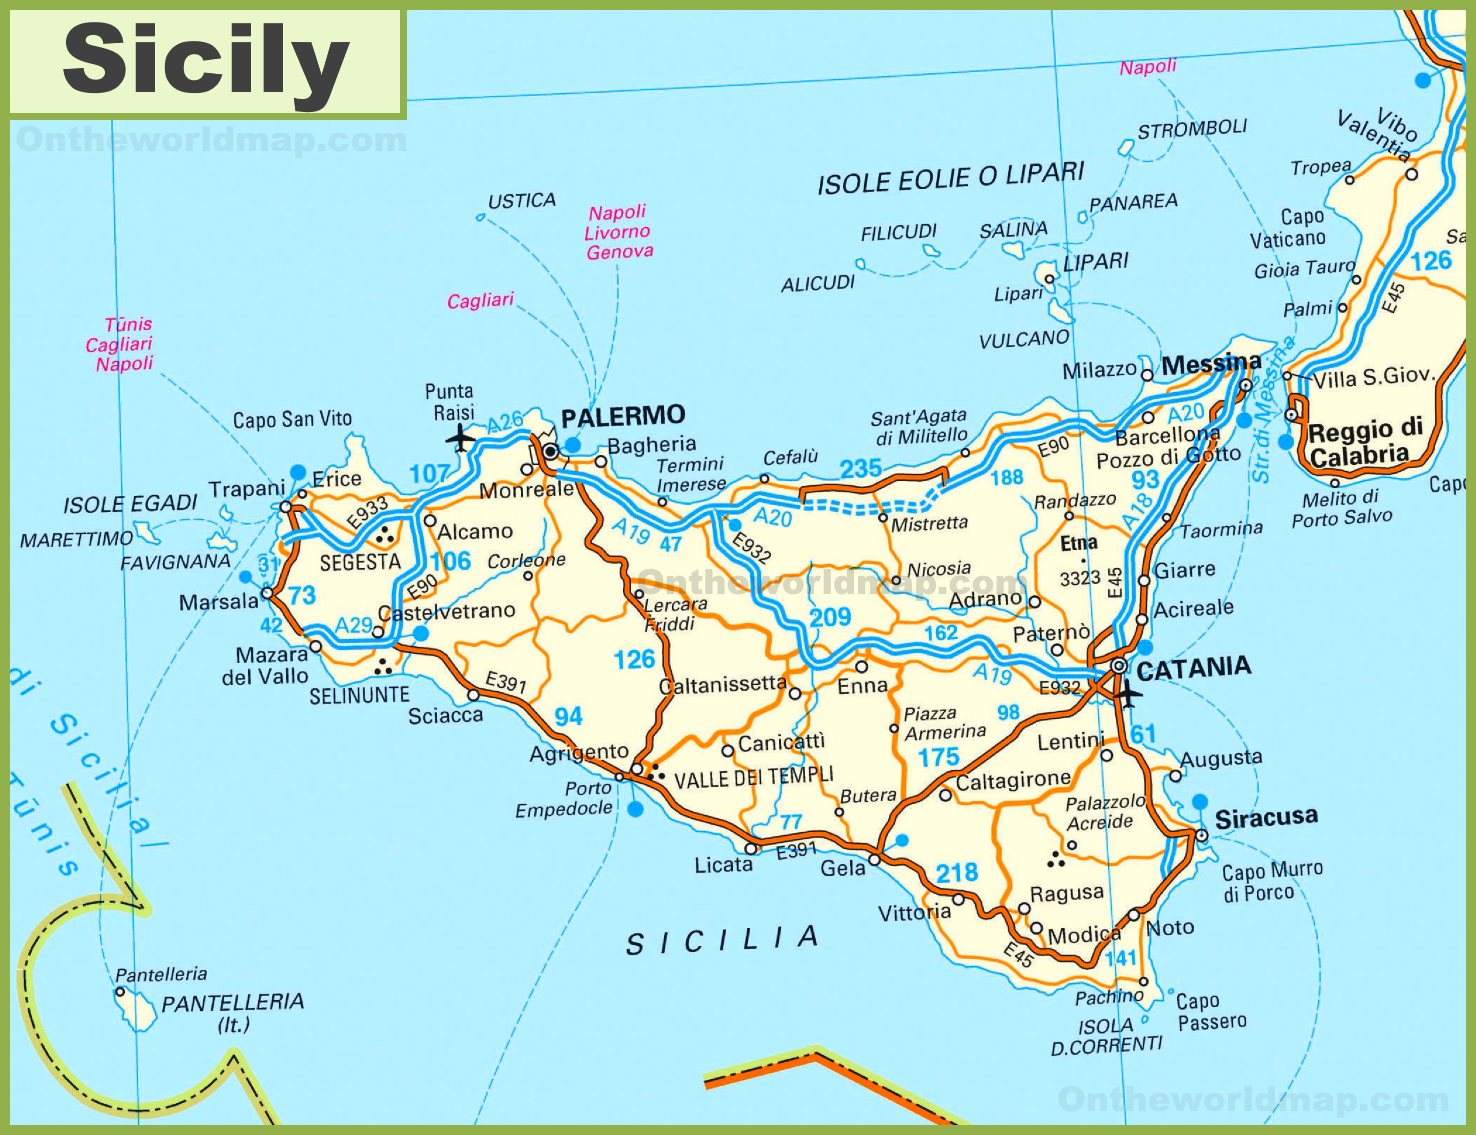 Cities In Sicily Italy Map.Road Map Of Sicily With Cities And Towns